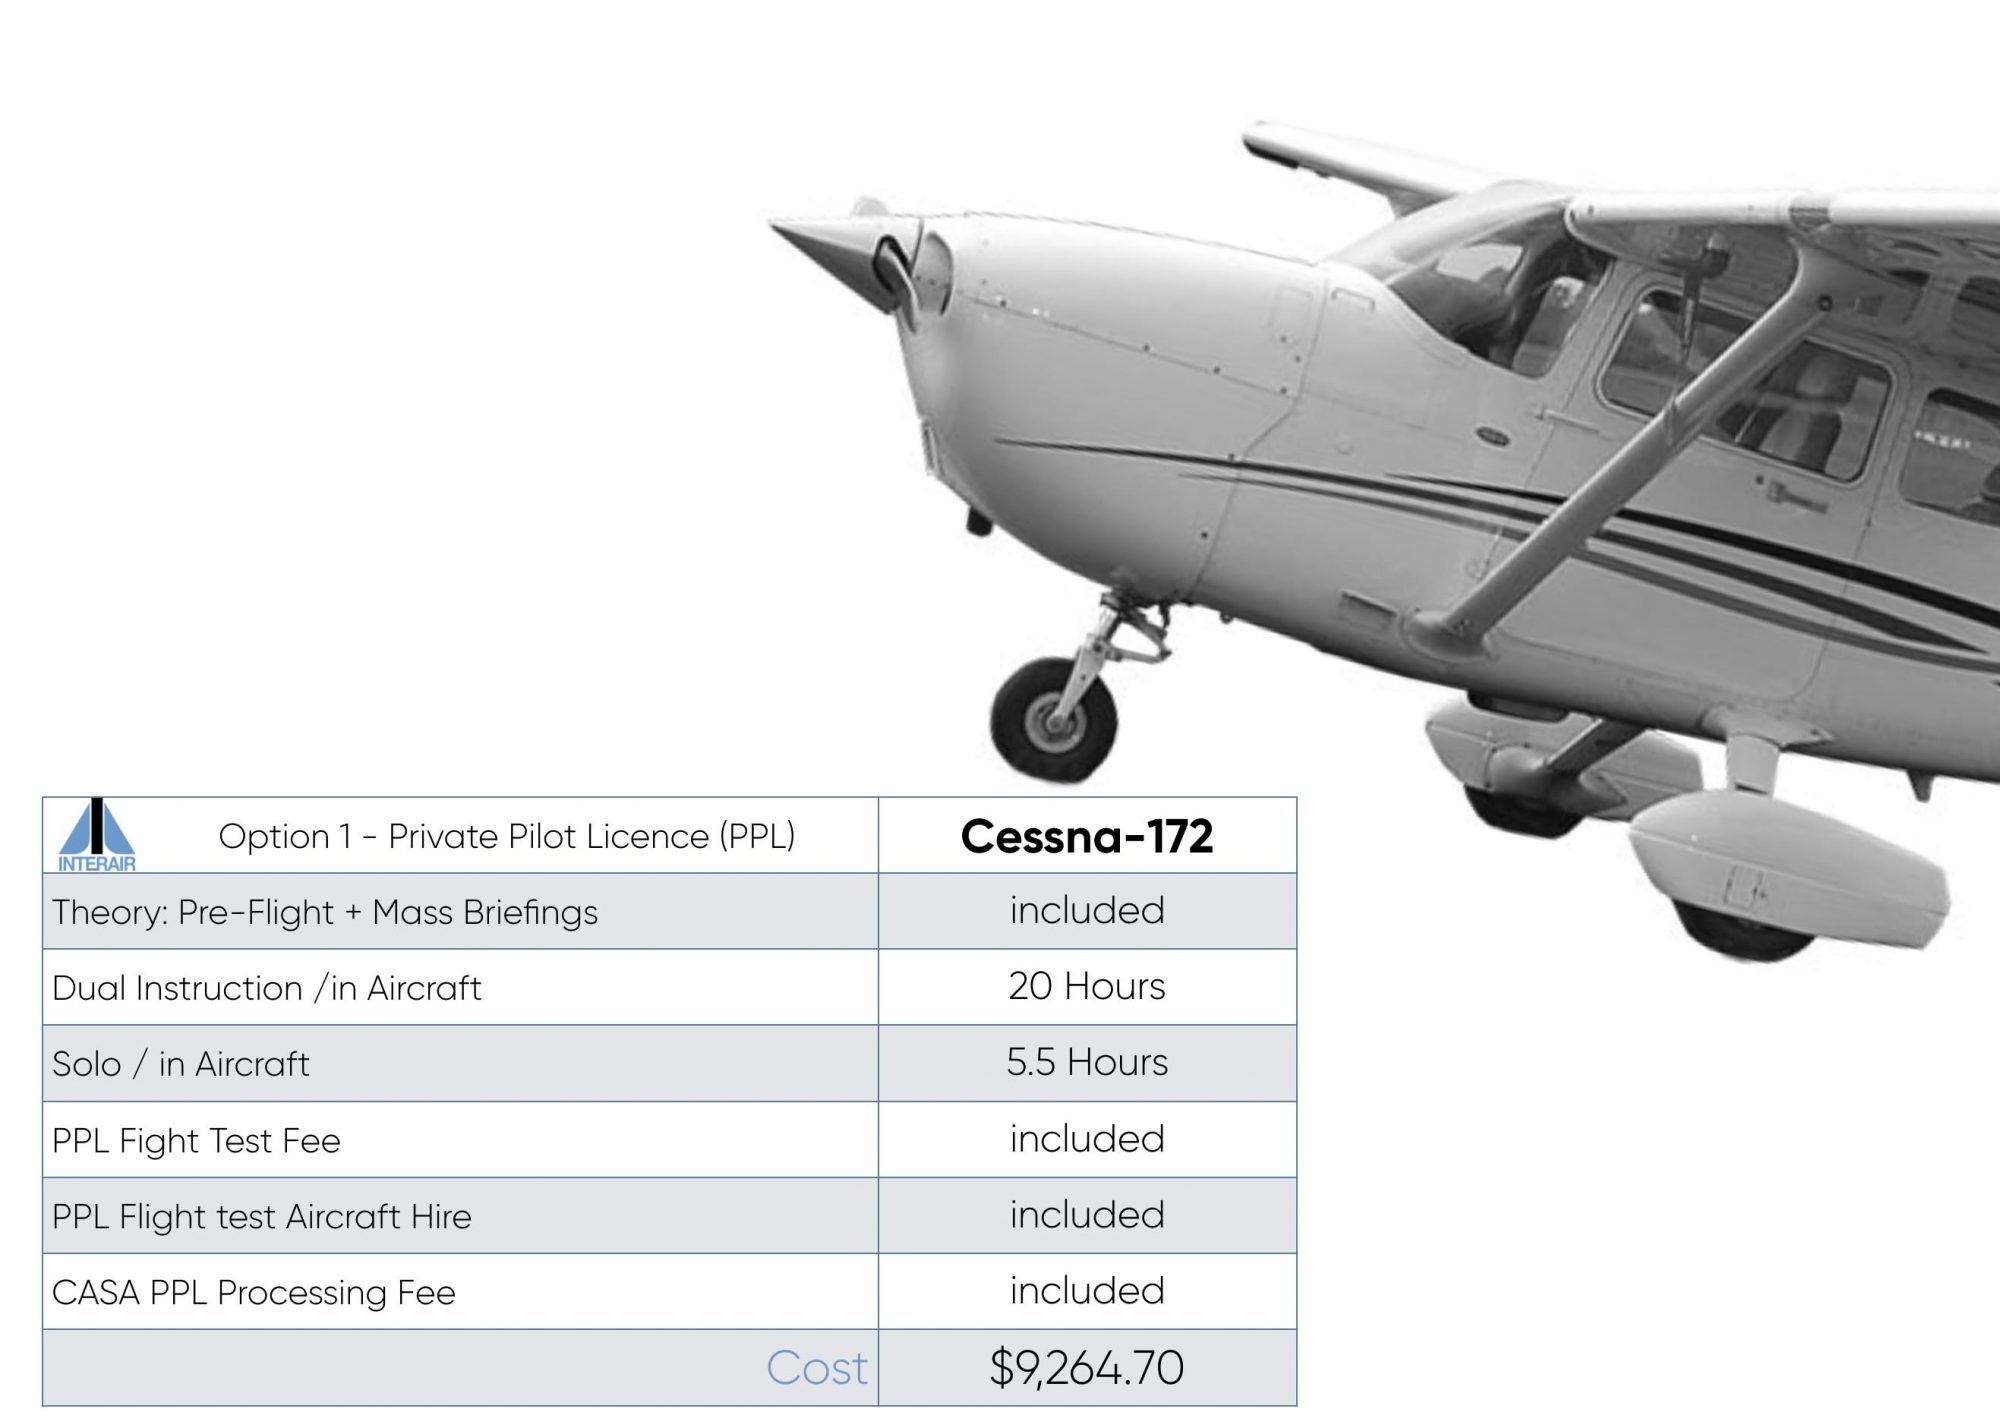 PRIVATE PILOT LICENCE COST